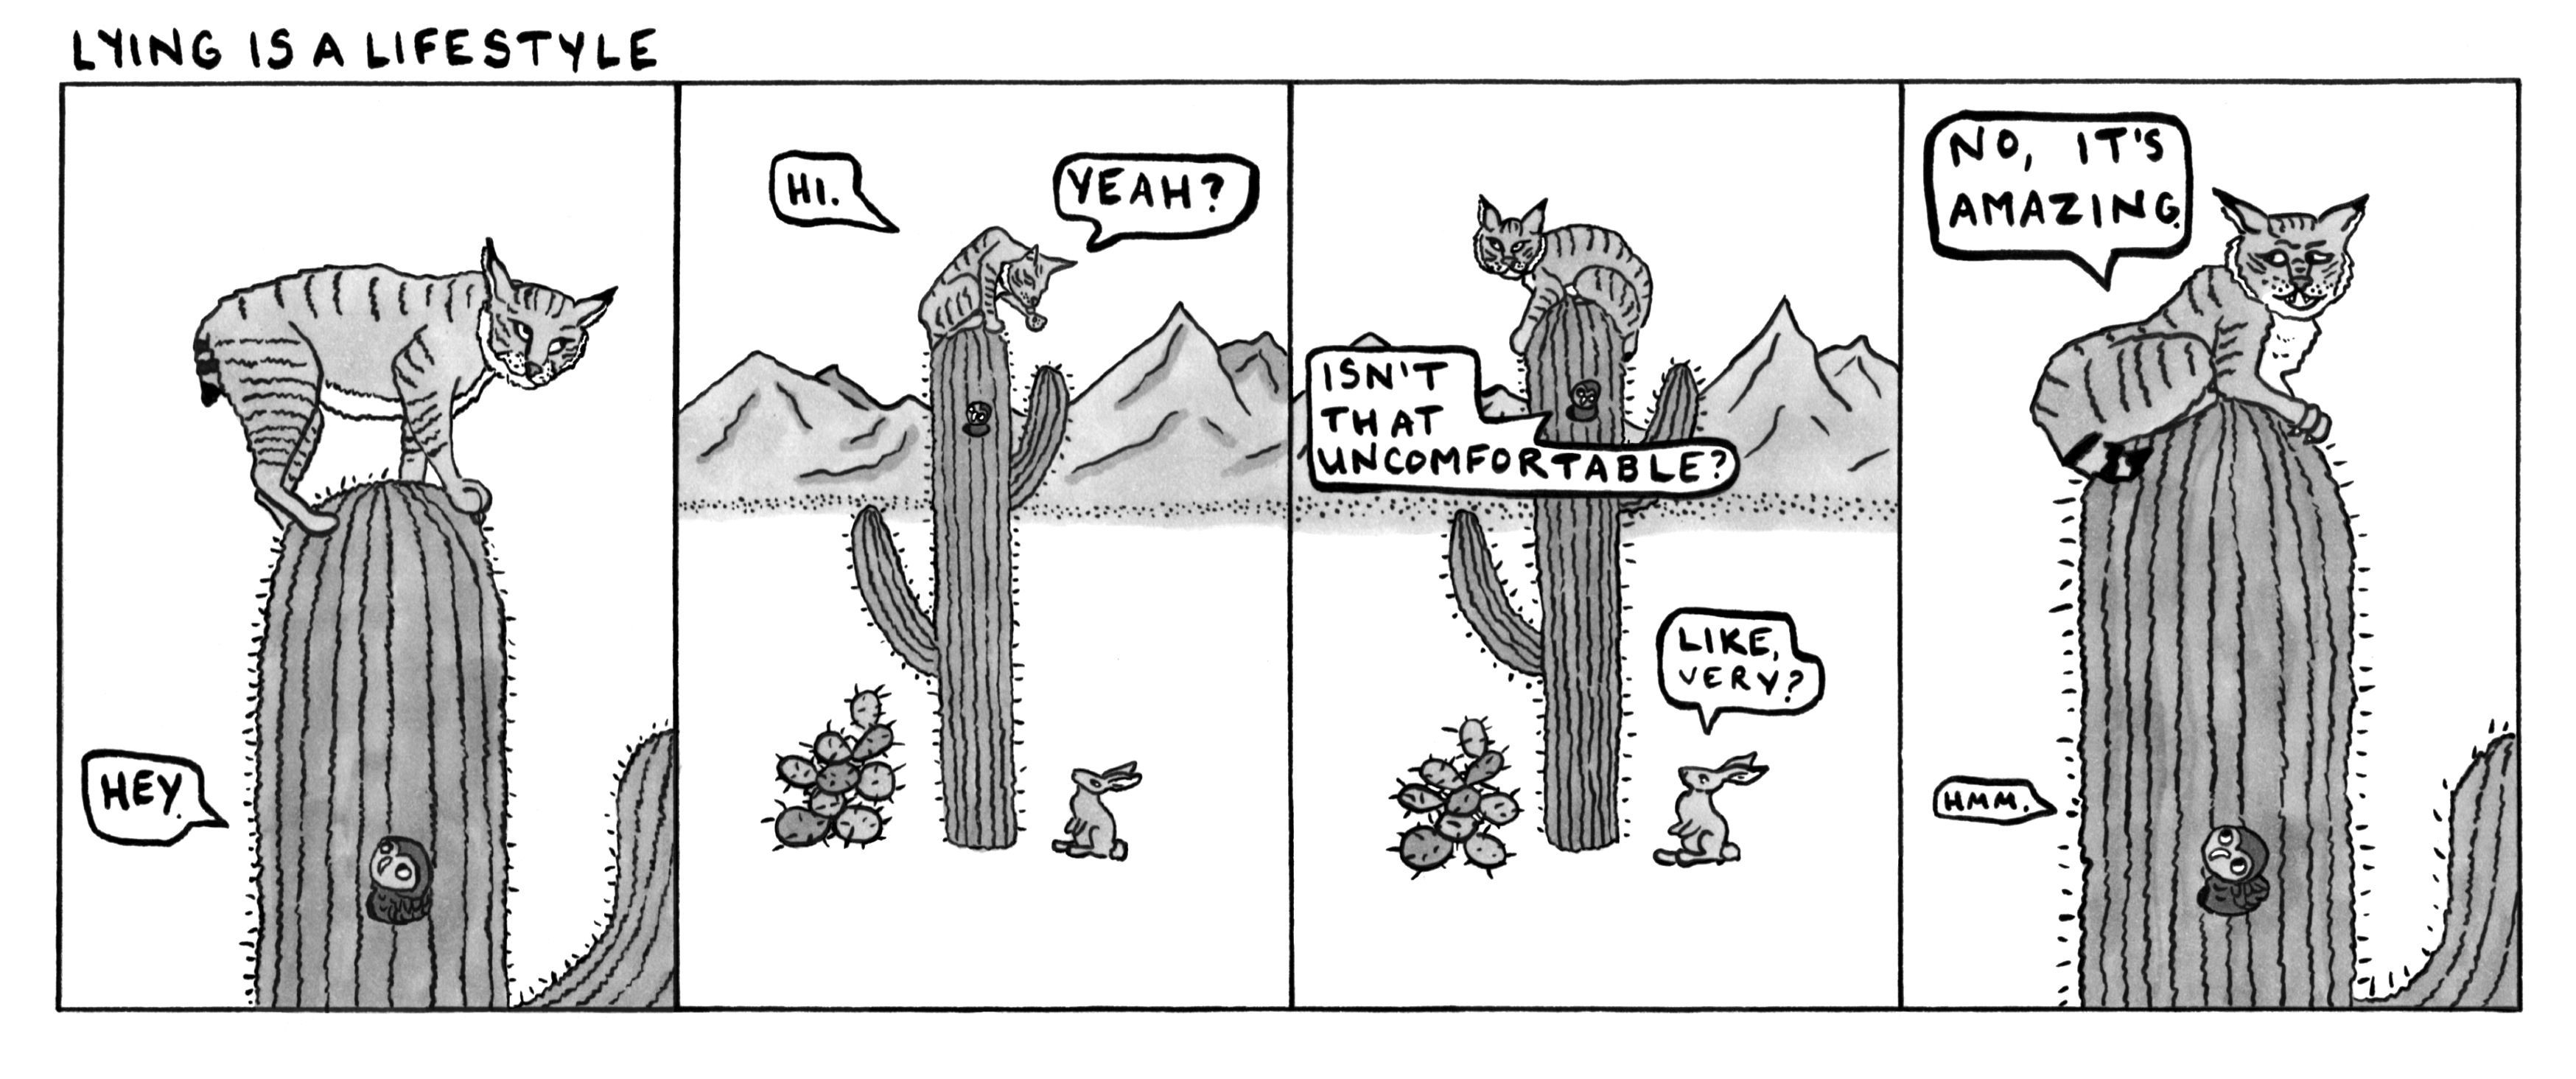 Bobcats really do climb saguaros, so in some ways, the lie here is mine